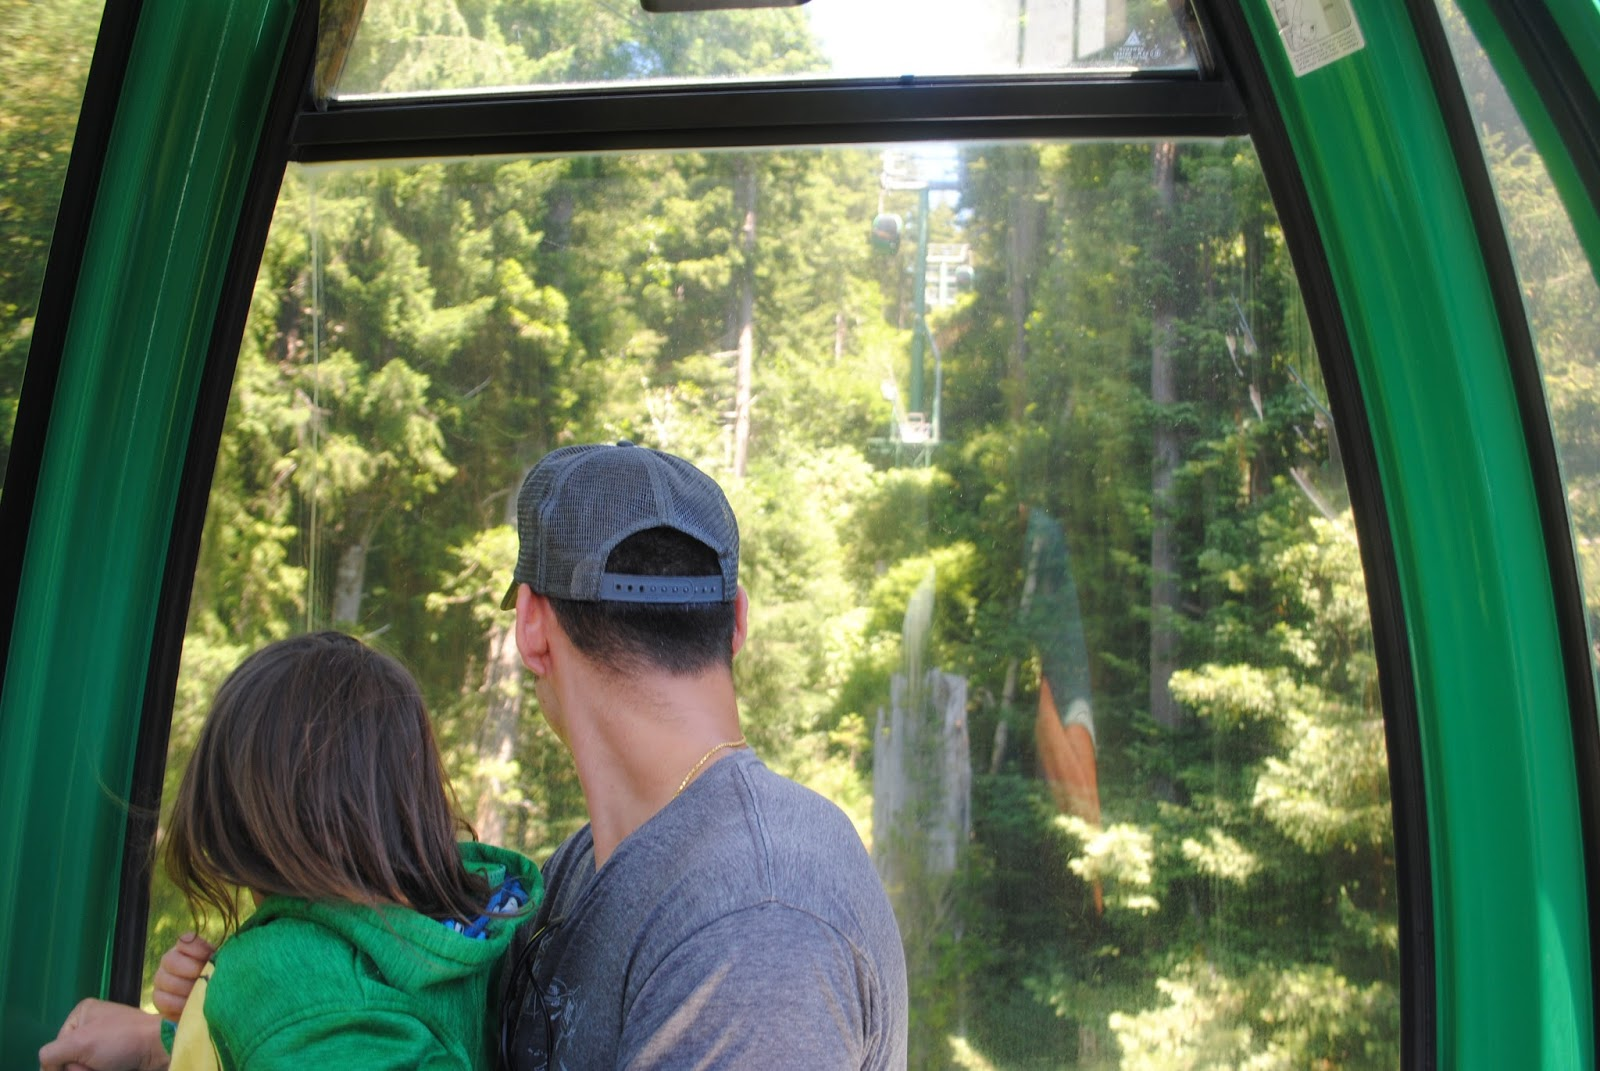 TREES OF MYSTERY - What to do in Southern Oregon - Things to do - Norhtern California - Camping - Day TRip - Kid-Friendly - Beaches